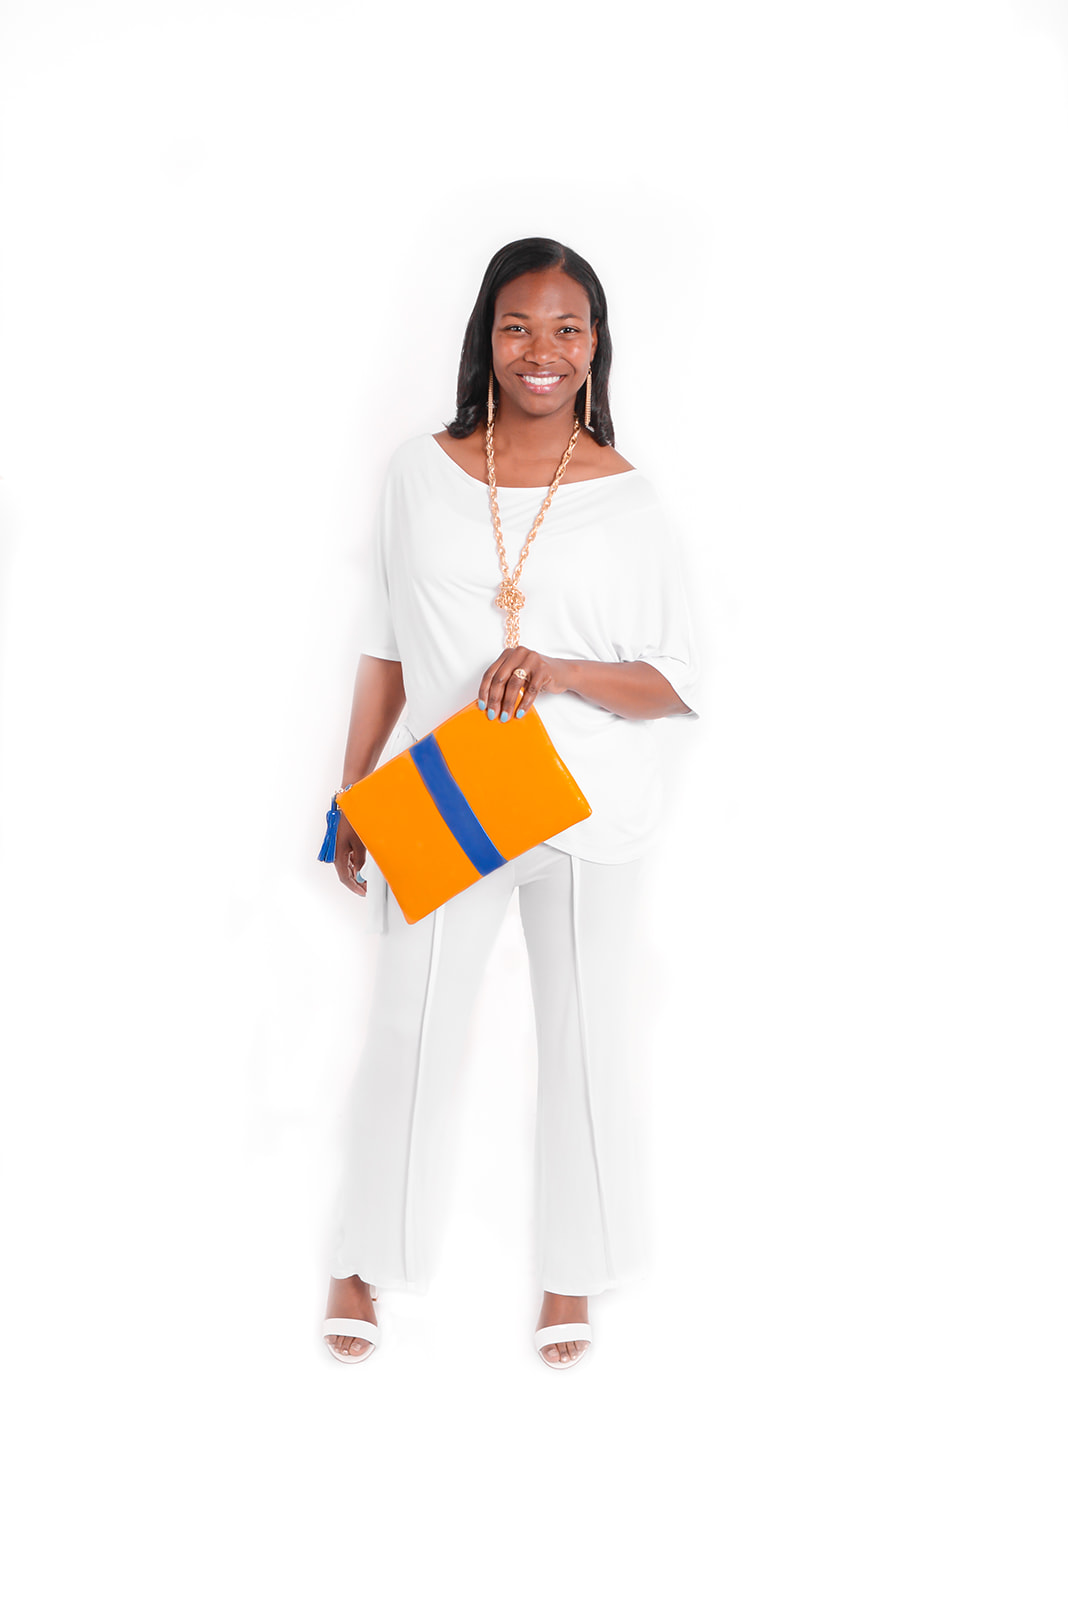 SGRho Blue and Gold Clutch.jpg